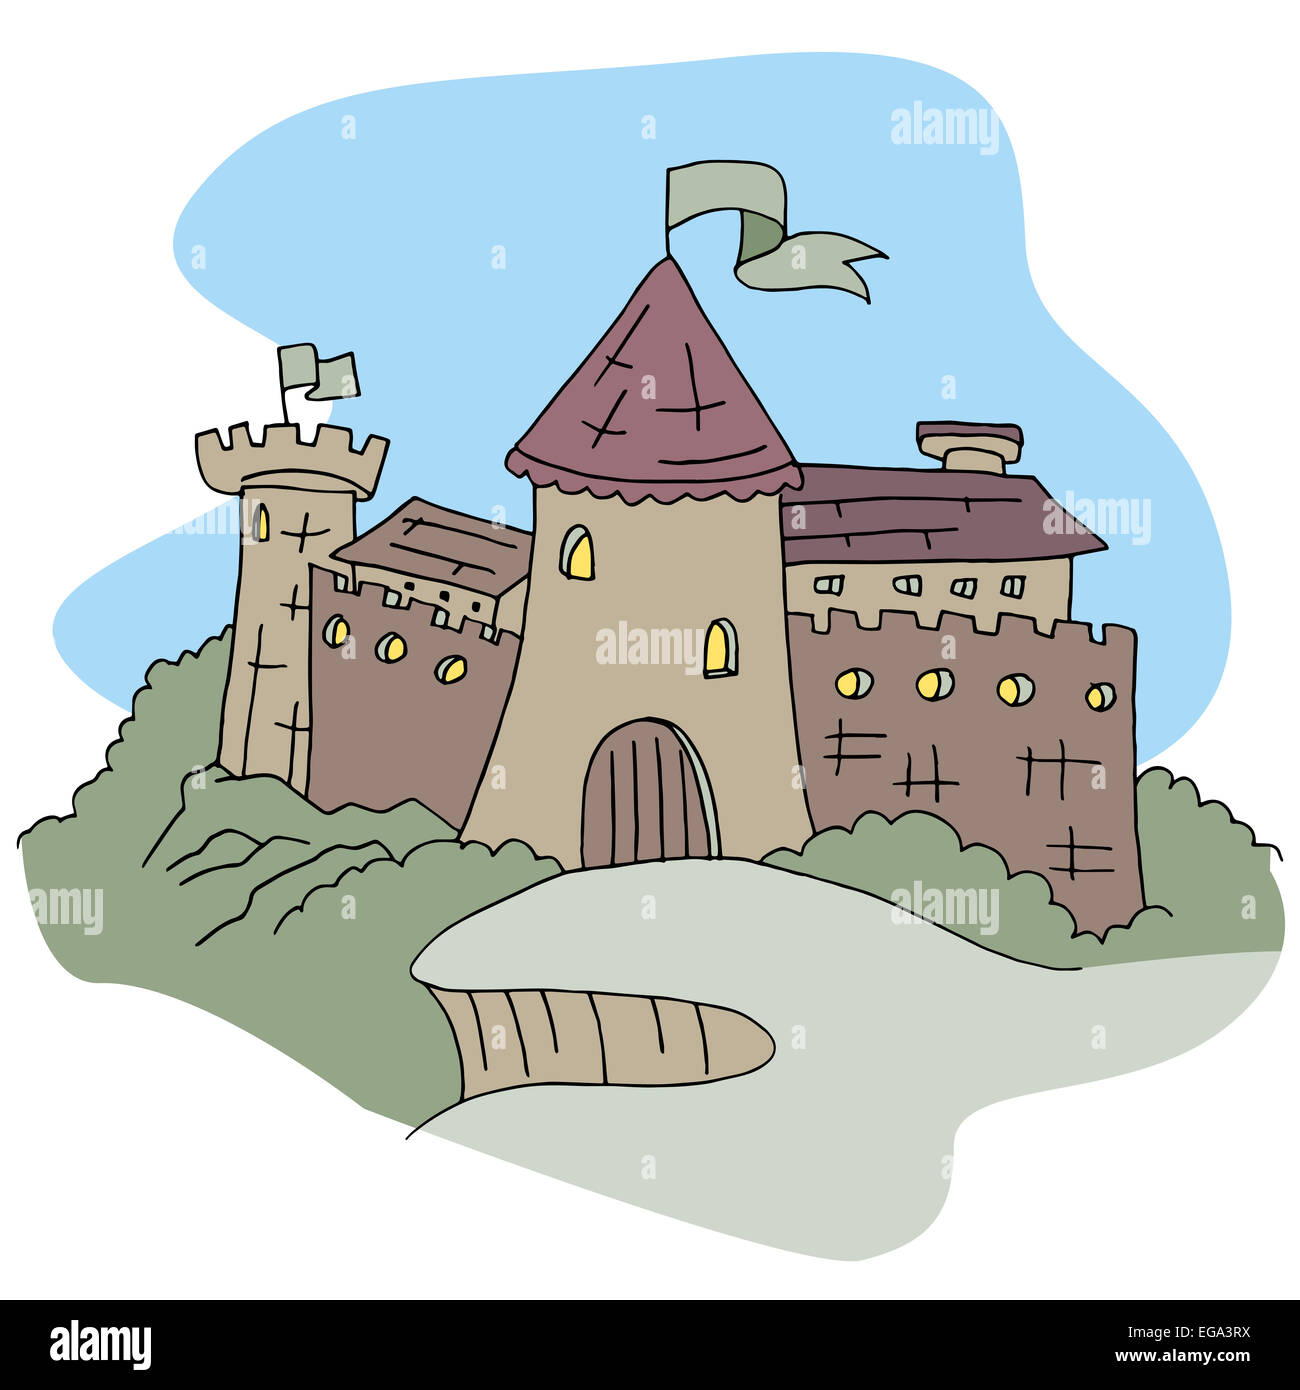 An image of a castle. - Stock Image